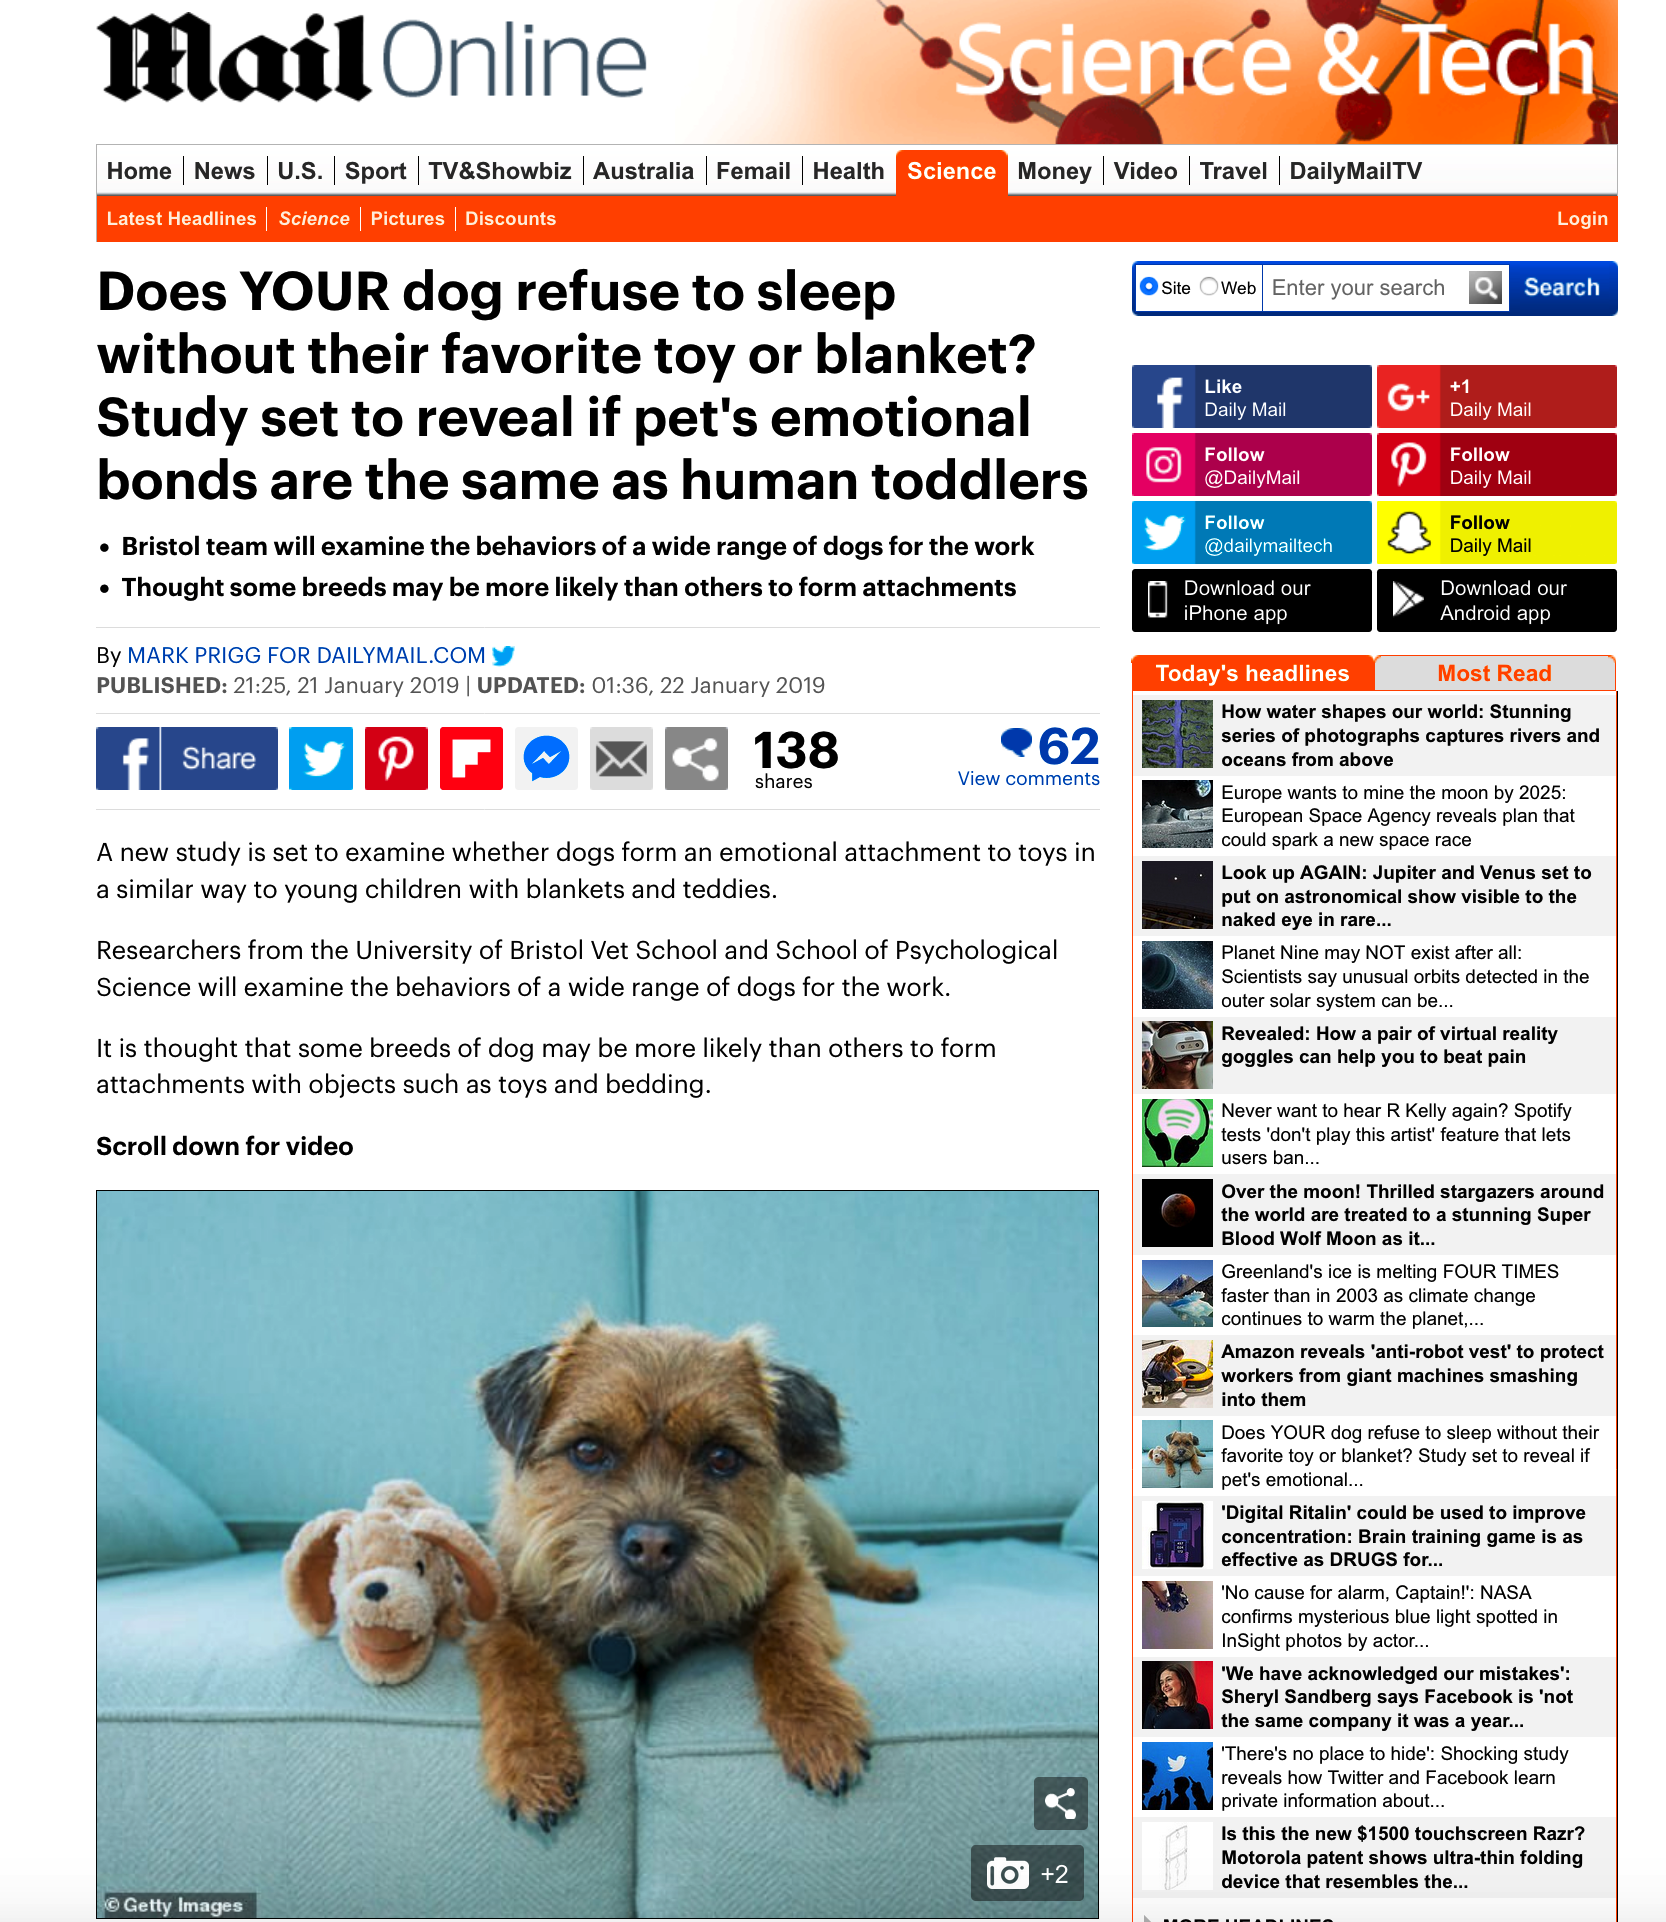 Does Your Dog Refuse To Sleep Without Their Favourite Toy?